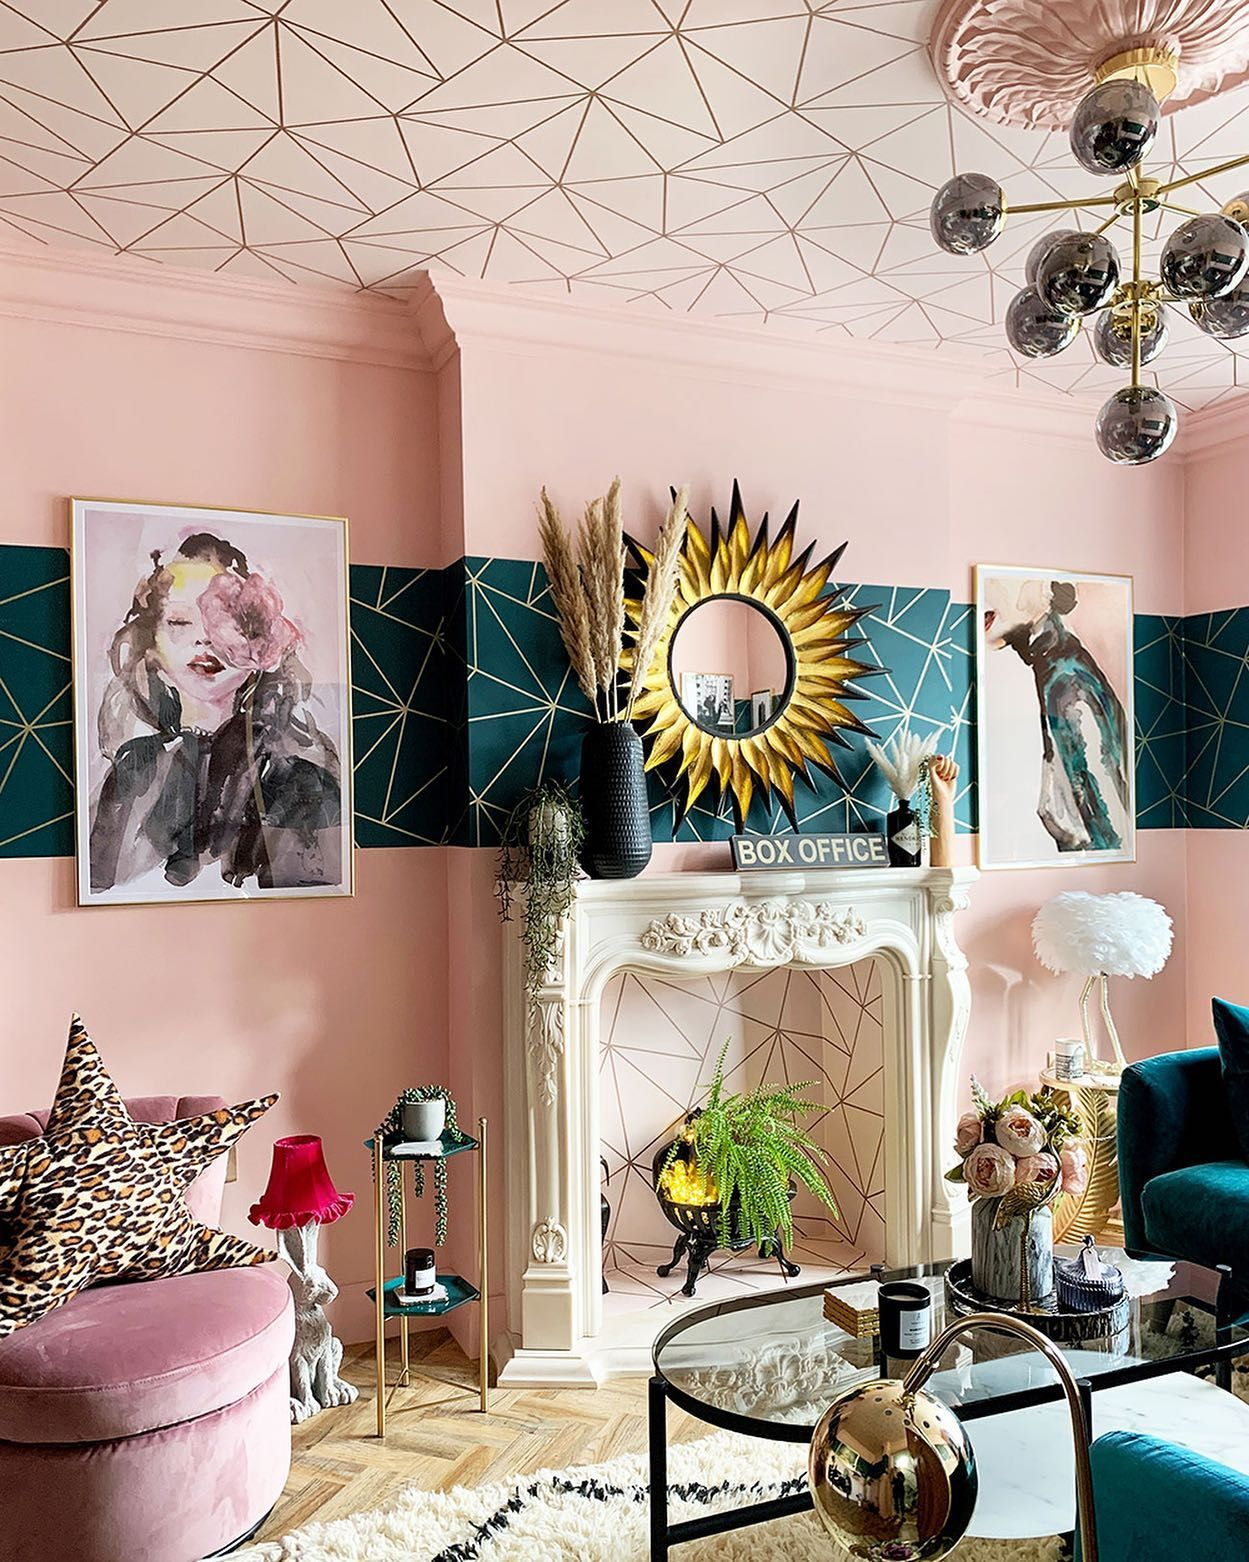 Who Lives In A Gorgeous House Like This Its The Lovely Caradiseblog Whose Fabulously Daring Home In 2020 Teal Living Rooms Glamorous Living Room Eclectic Living Room #pink #and #teal #living #room